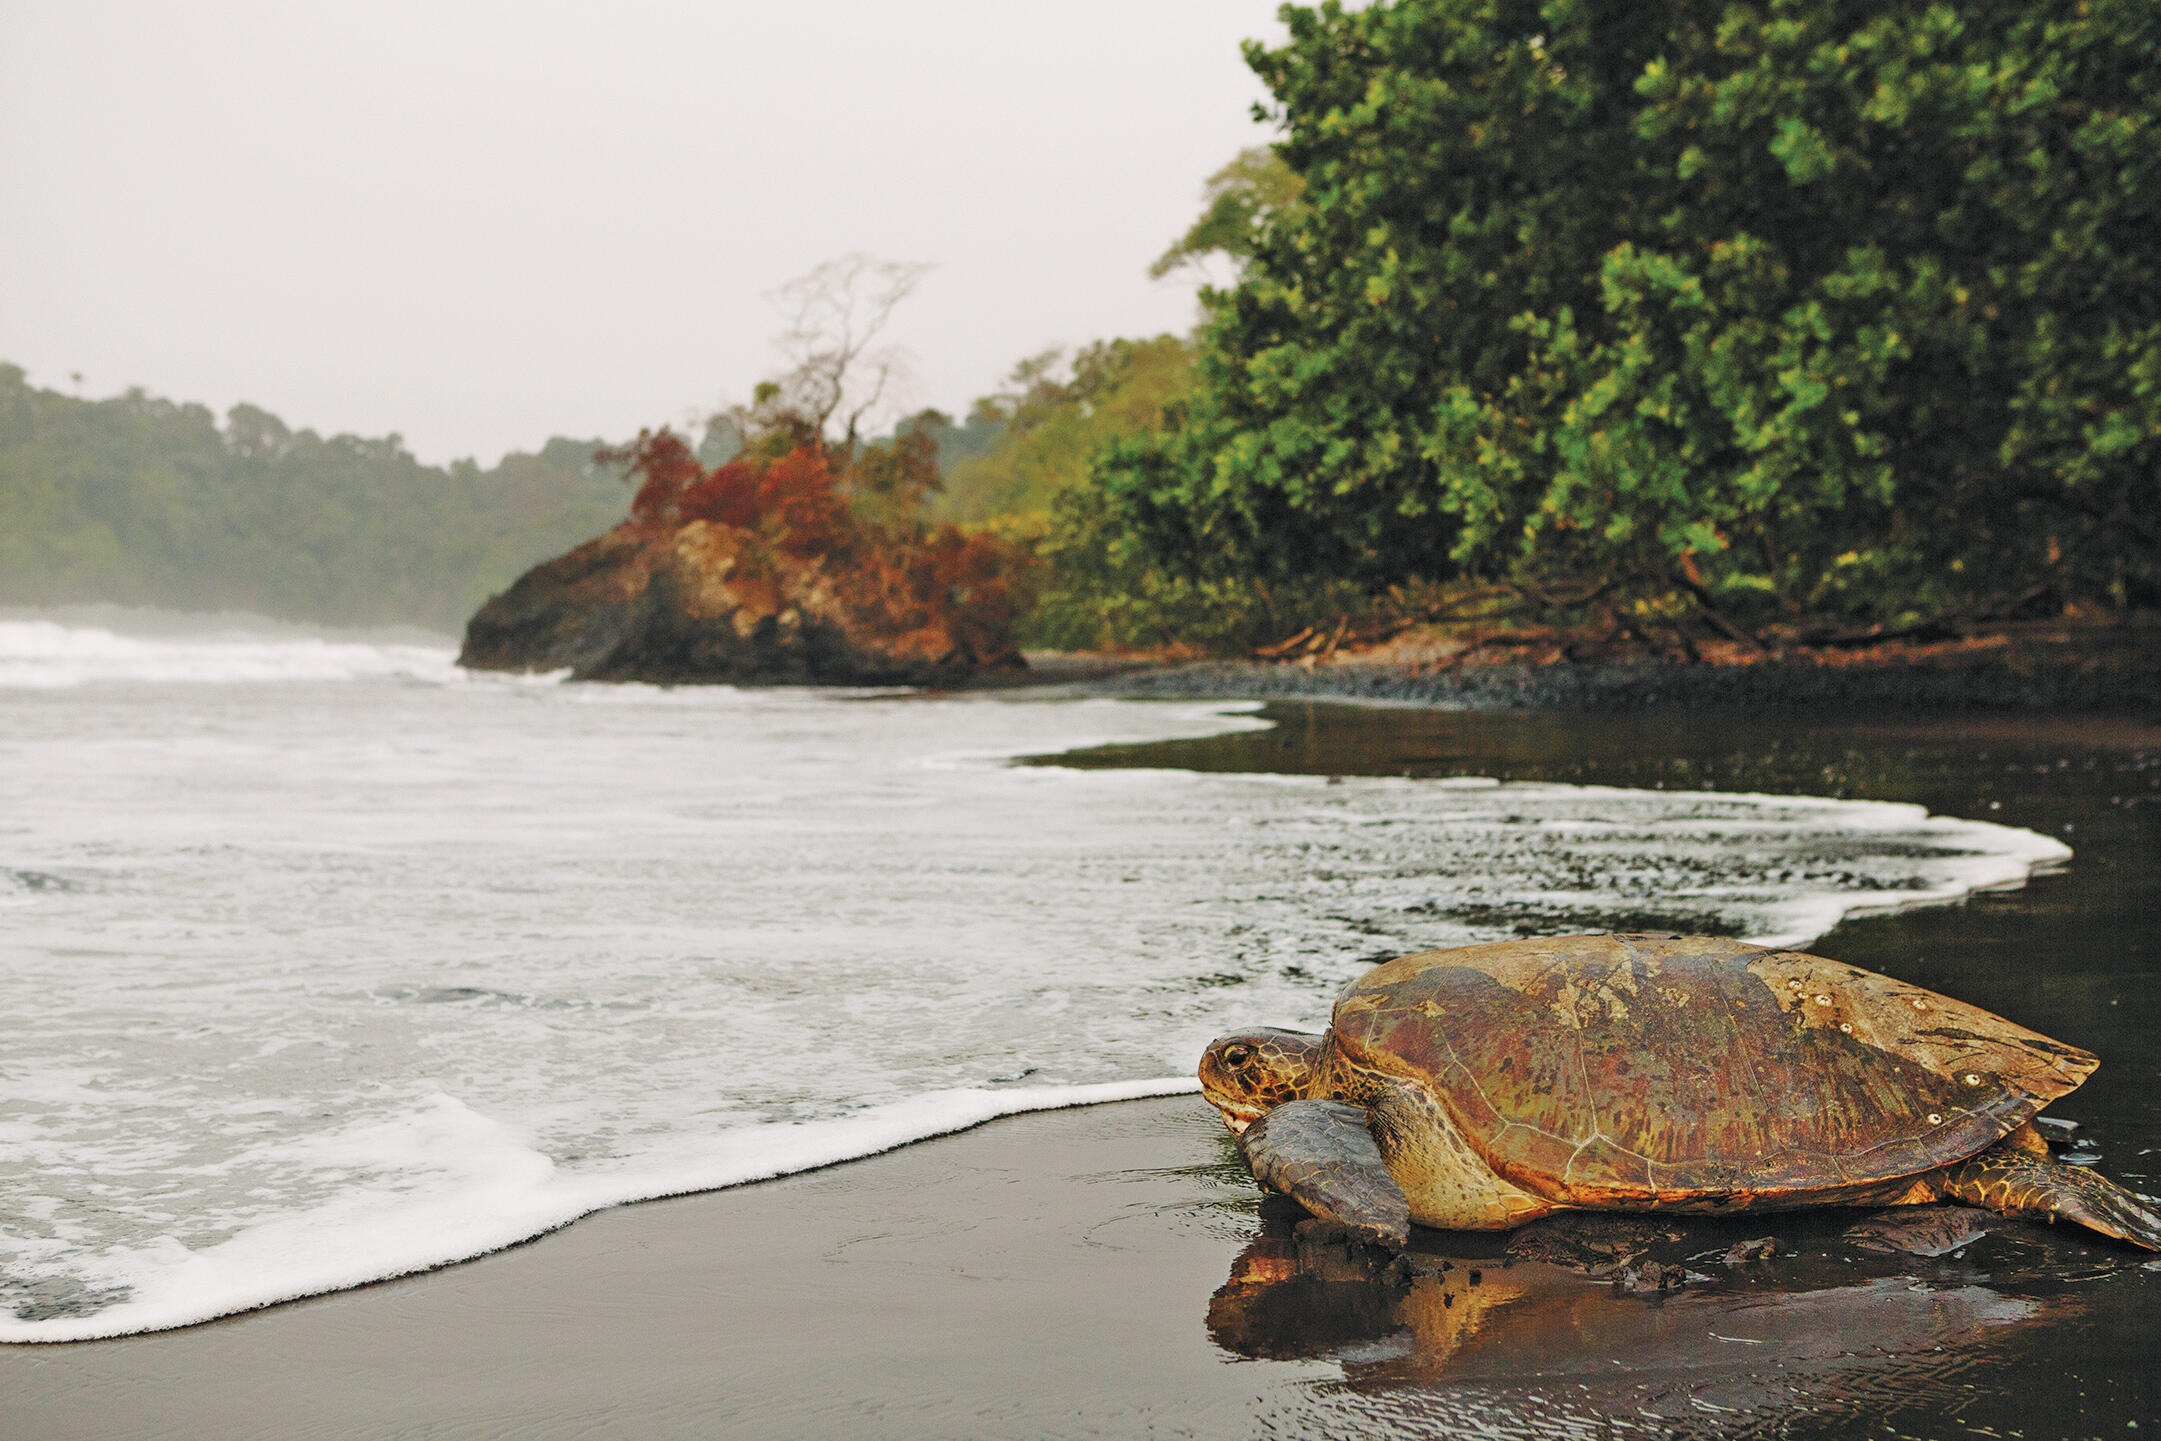 The beaches of southern Bioko are nesting grounds for four species of sea turtle, whose eggs and meat are a sought-after food source for locals. Tristan Spinski